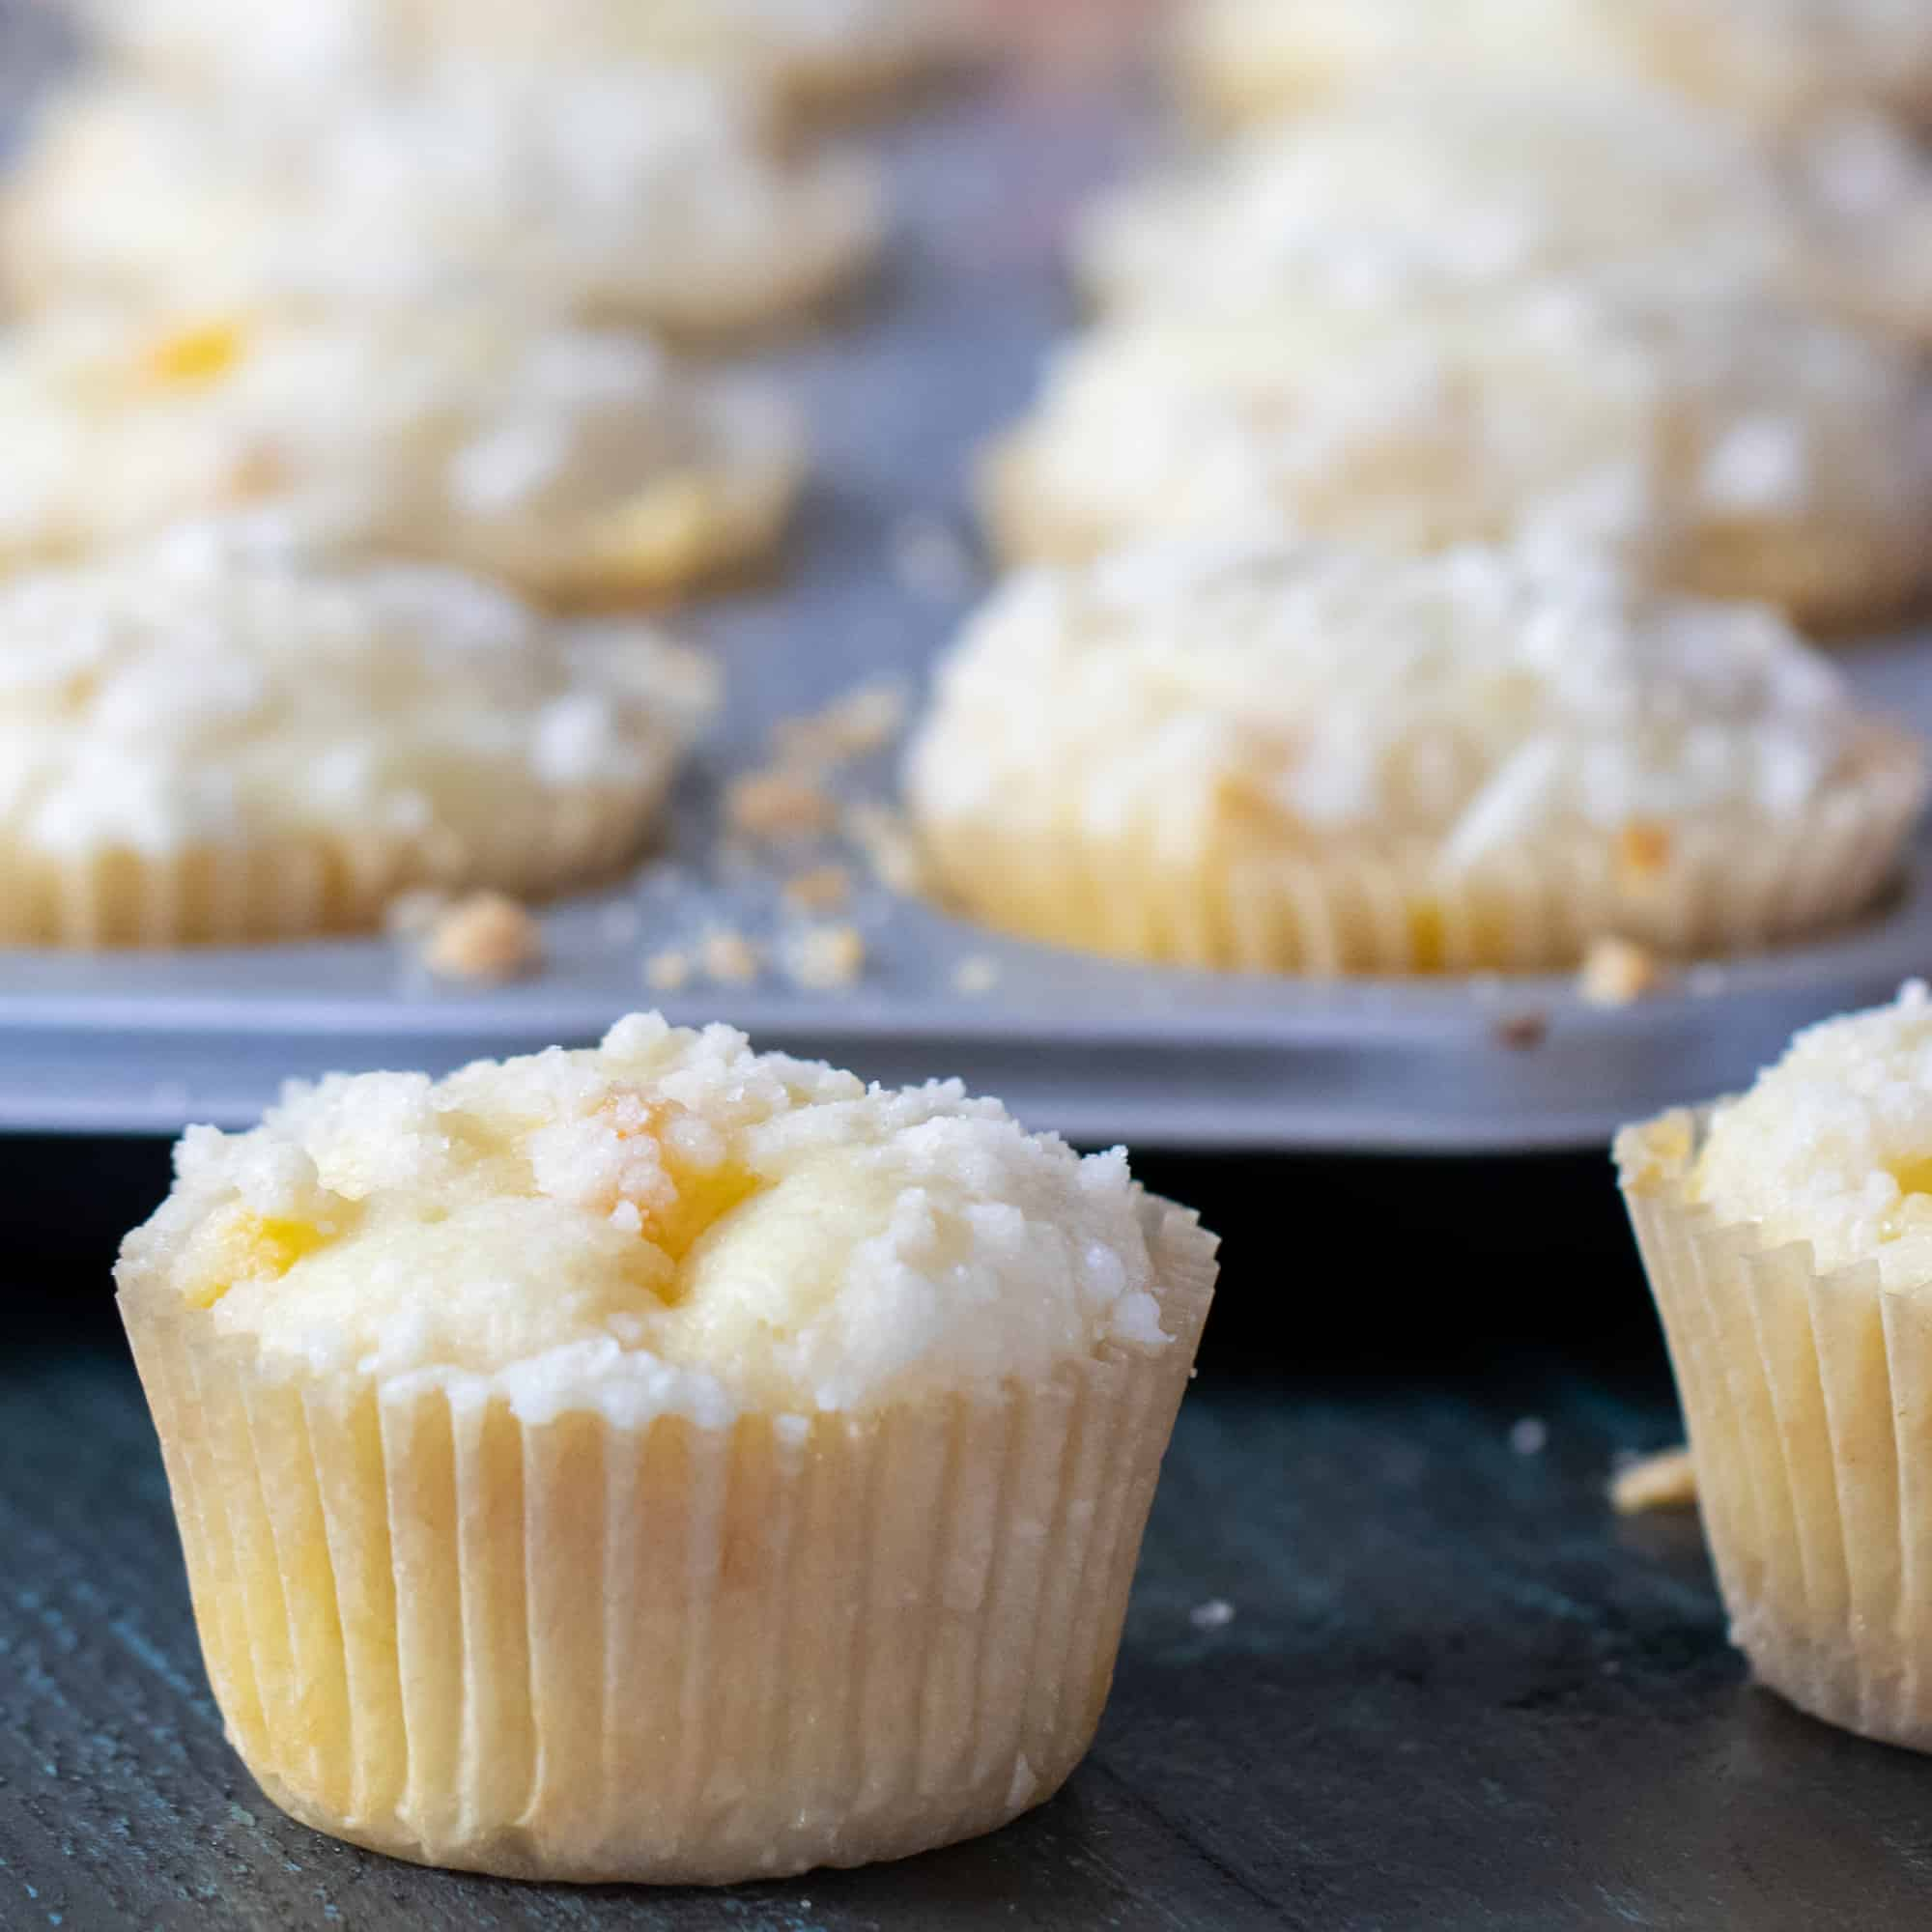 Fresh baked peach cobbler muffins and a buttery crumble topping.